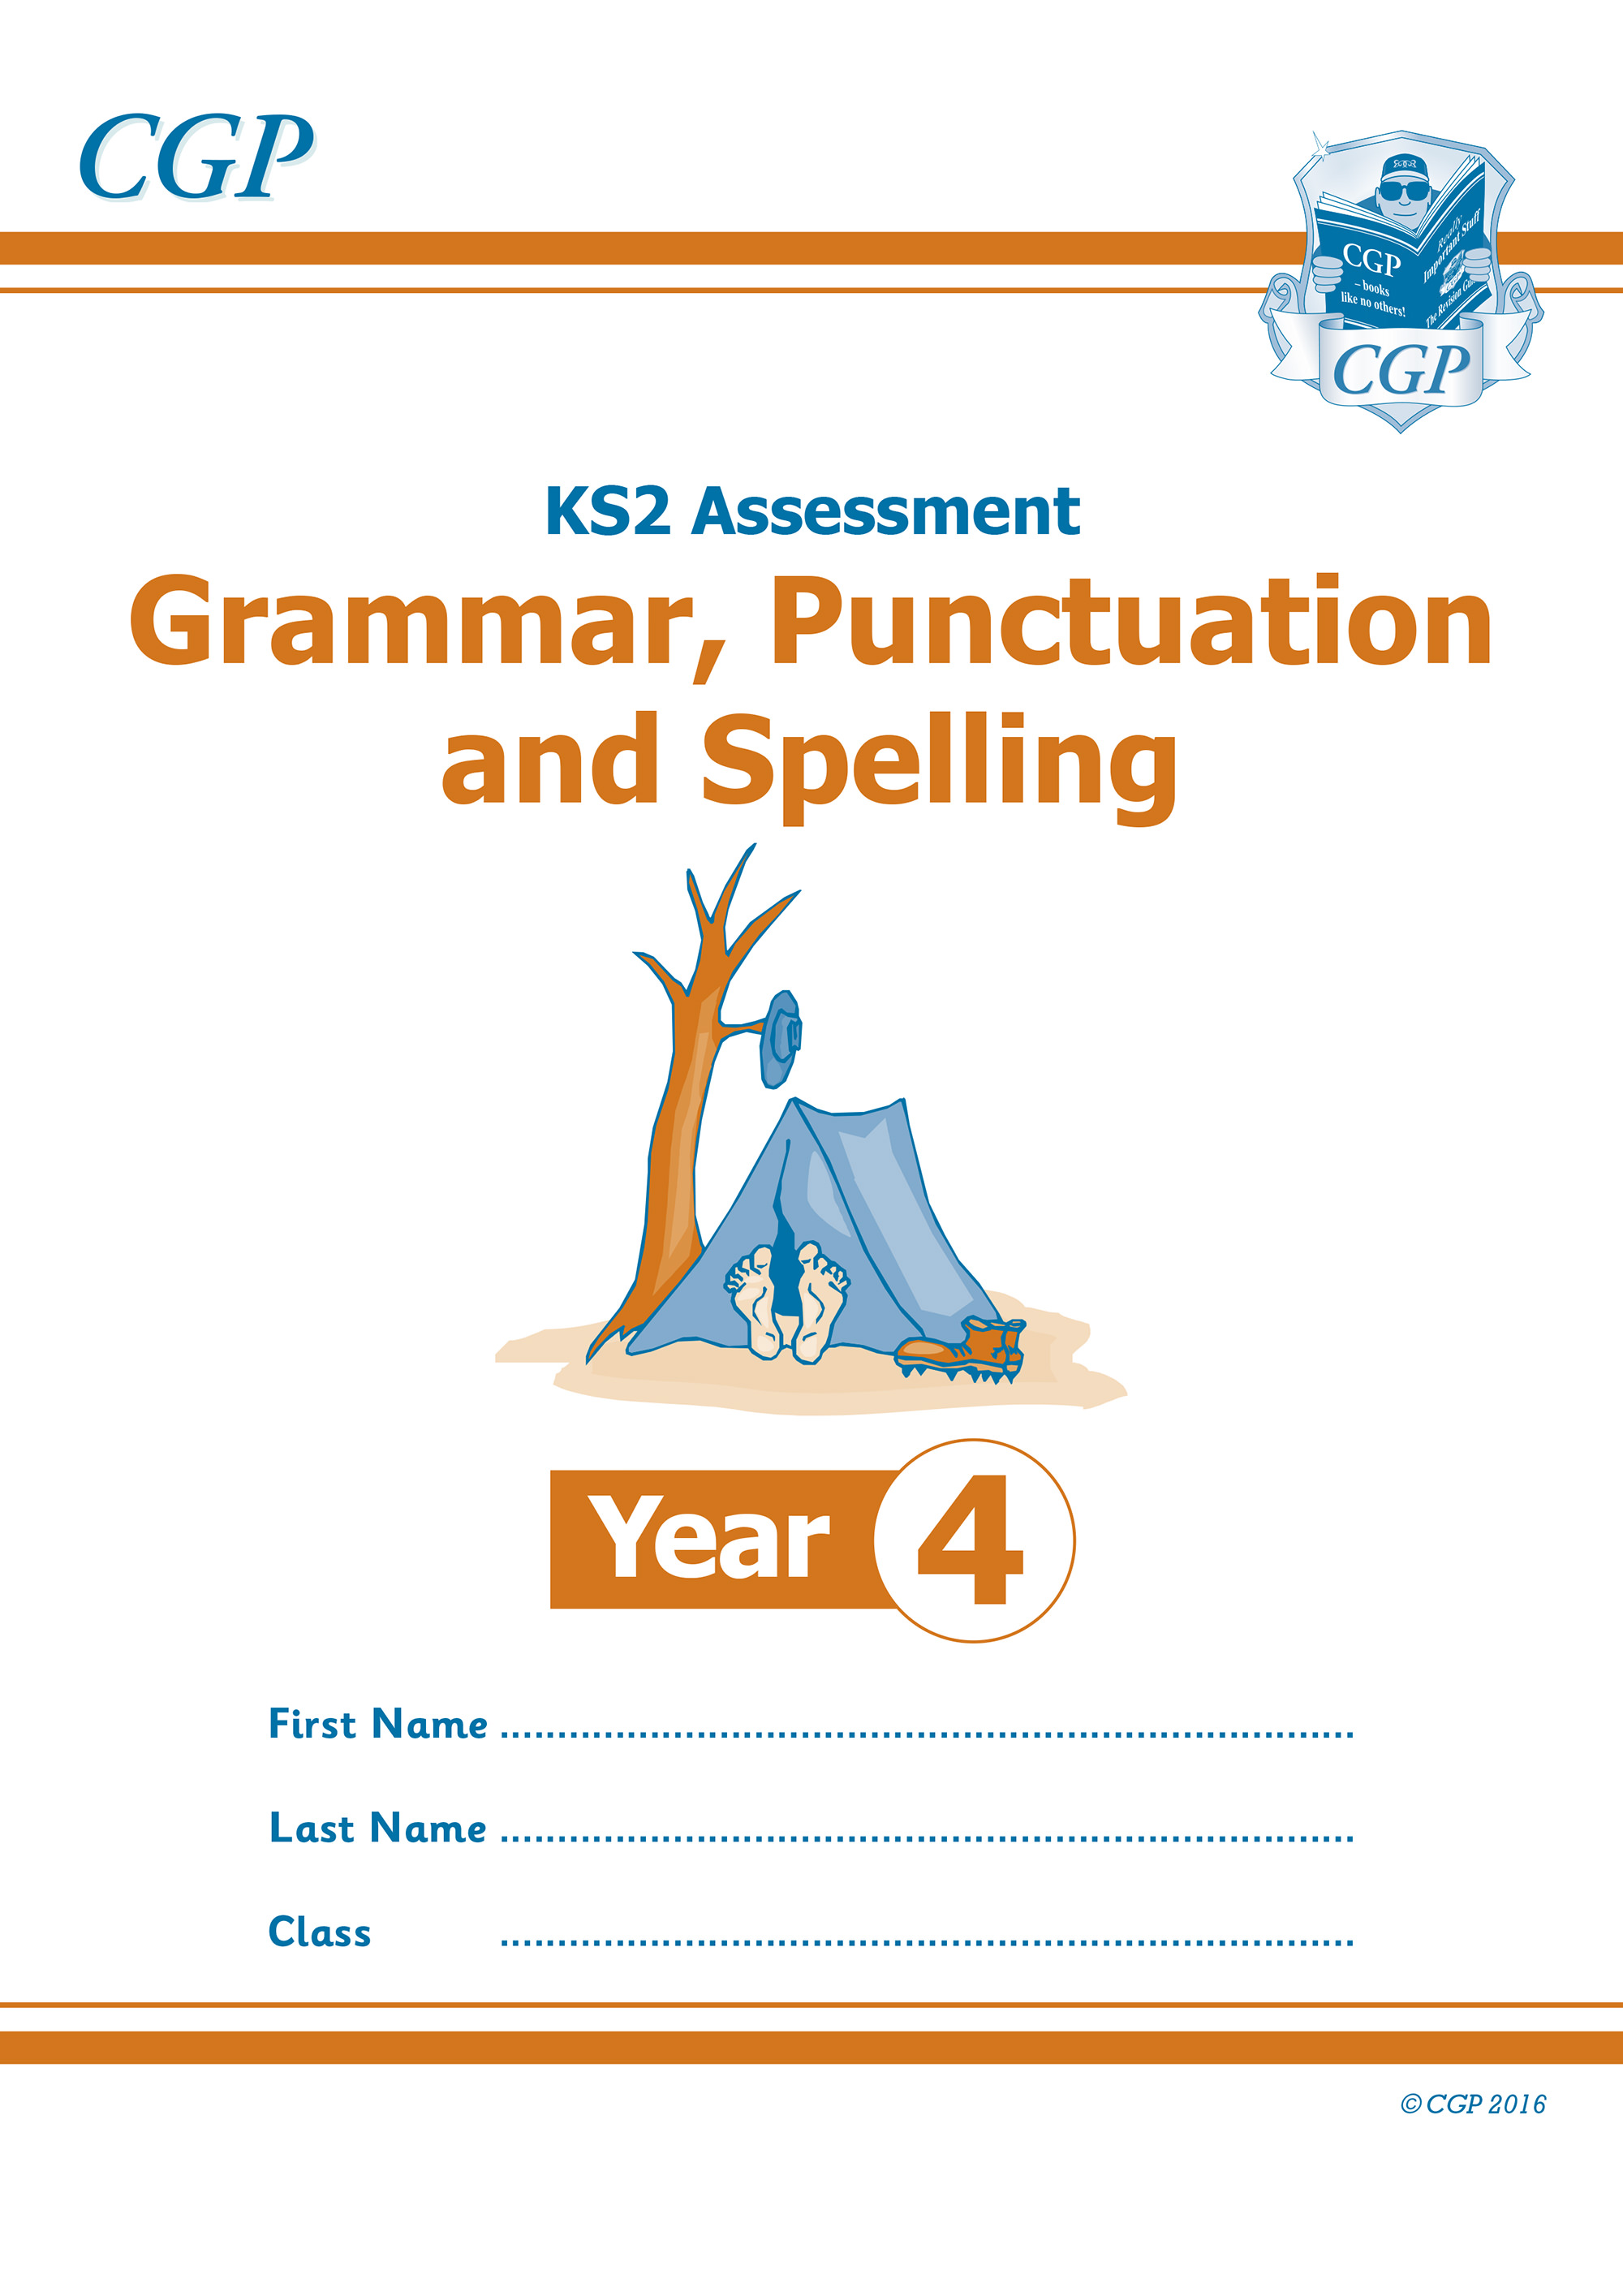 E4GP21 - New KS2 Assessment: Spelling, Punctuation & Grammar - Year 4 Test